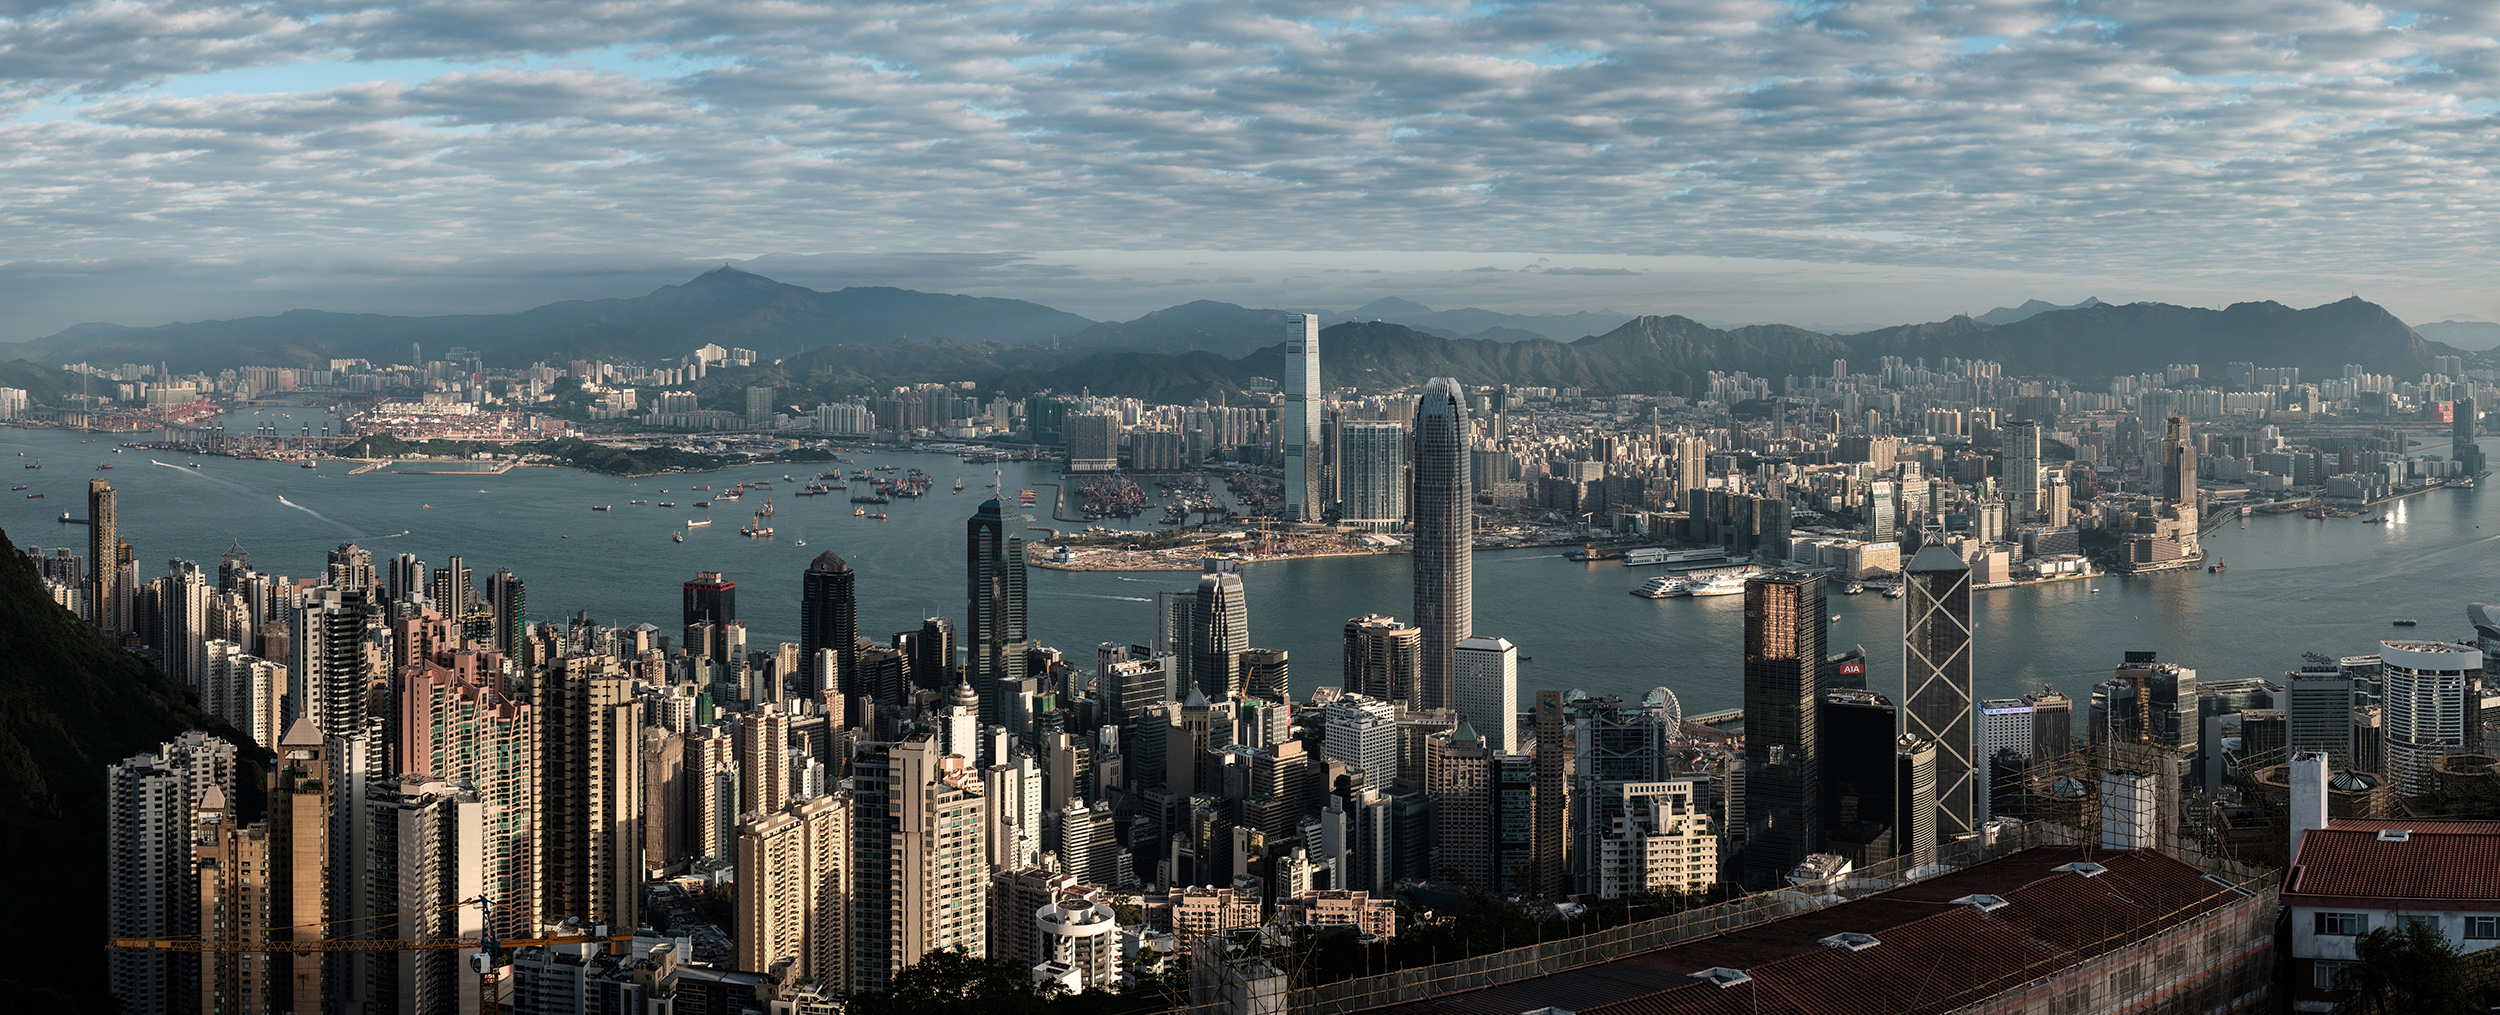 Panoramic view on the Hong Kong Skyline, Kowloon and Victoria Harbour from The Peak.